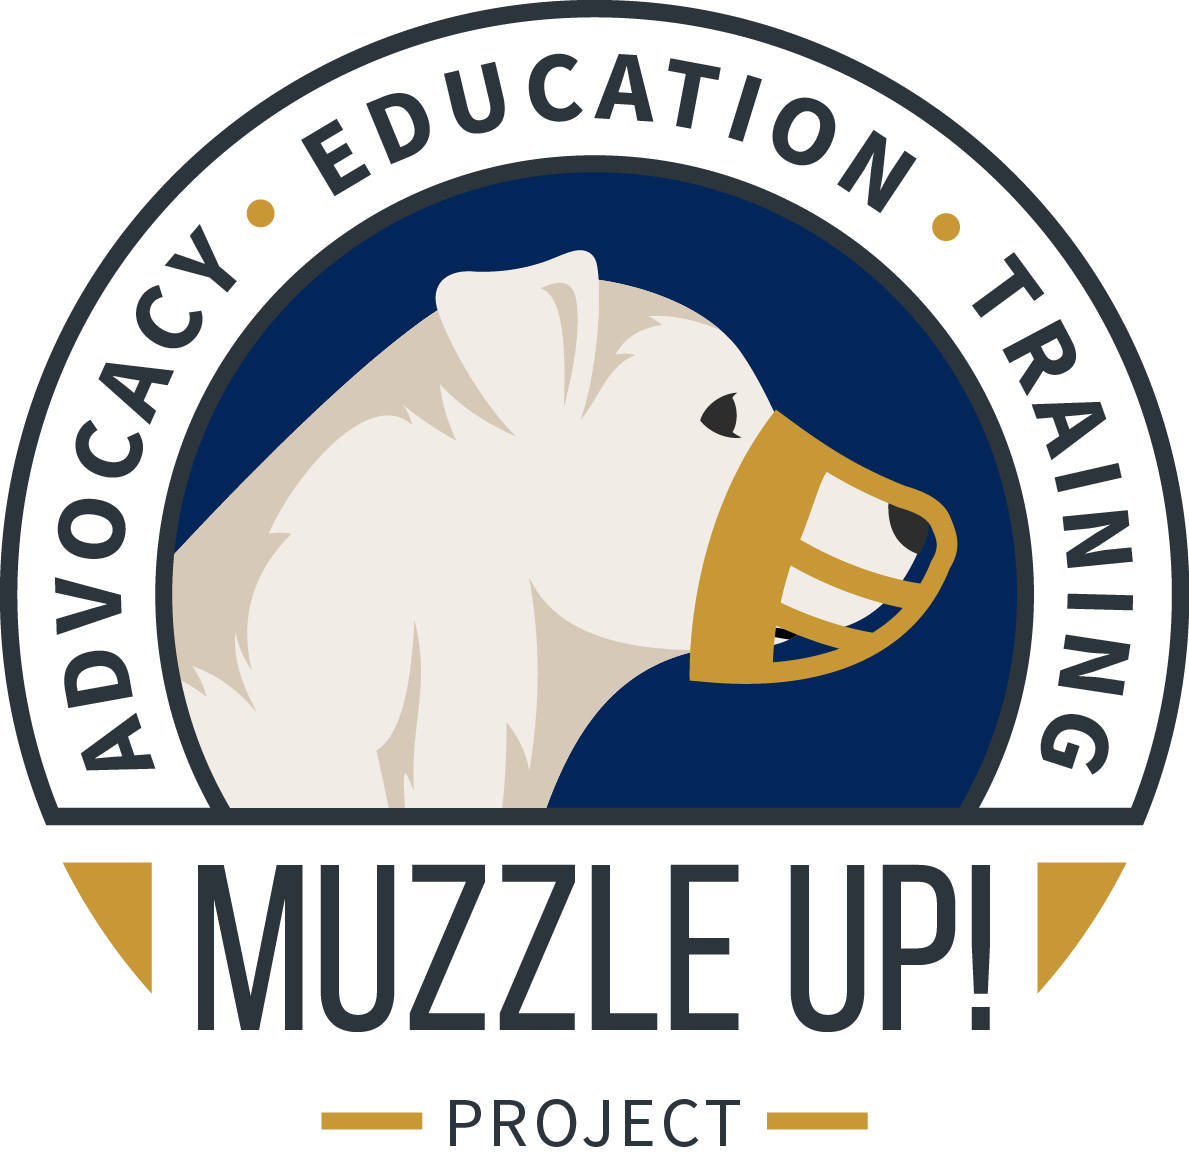 The Muzzle Up! Project